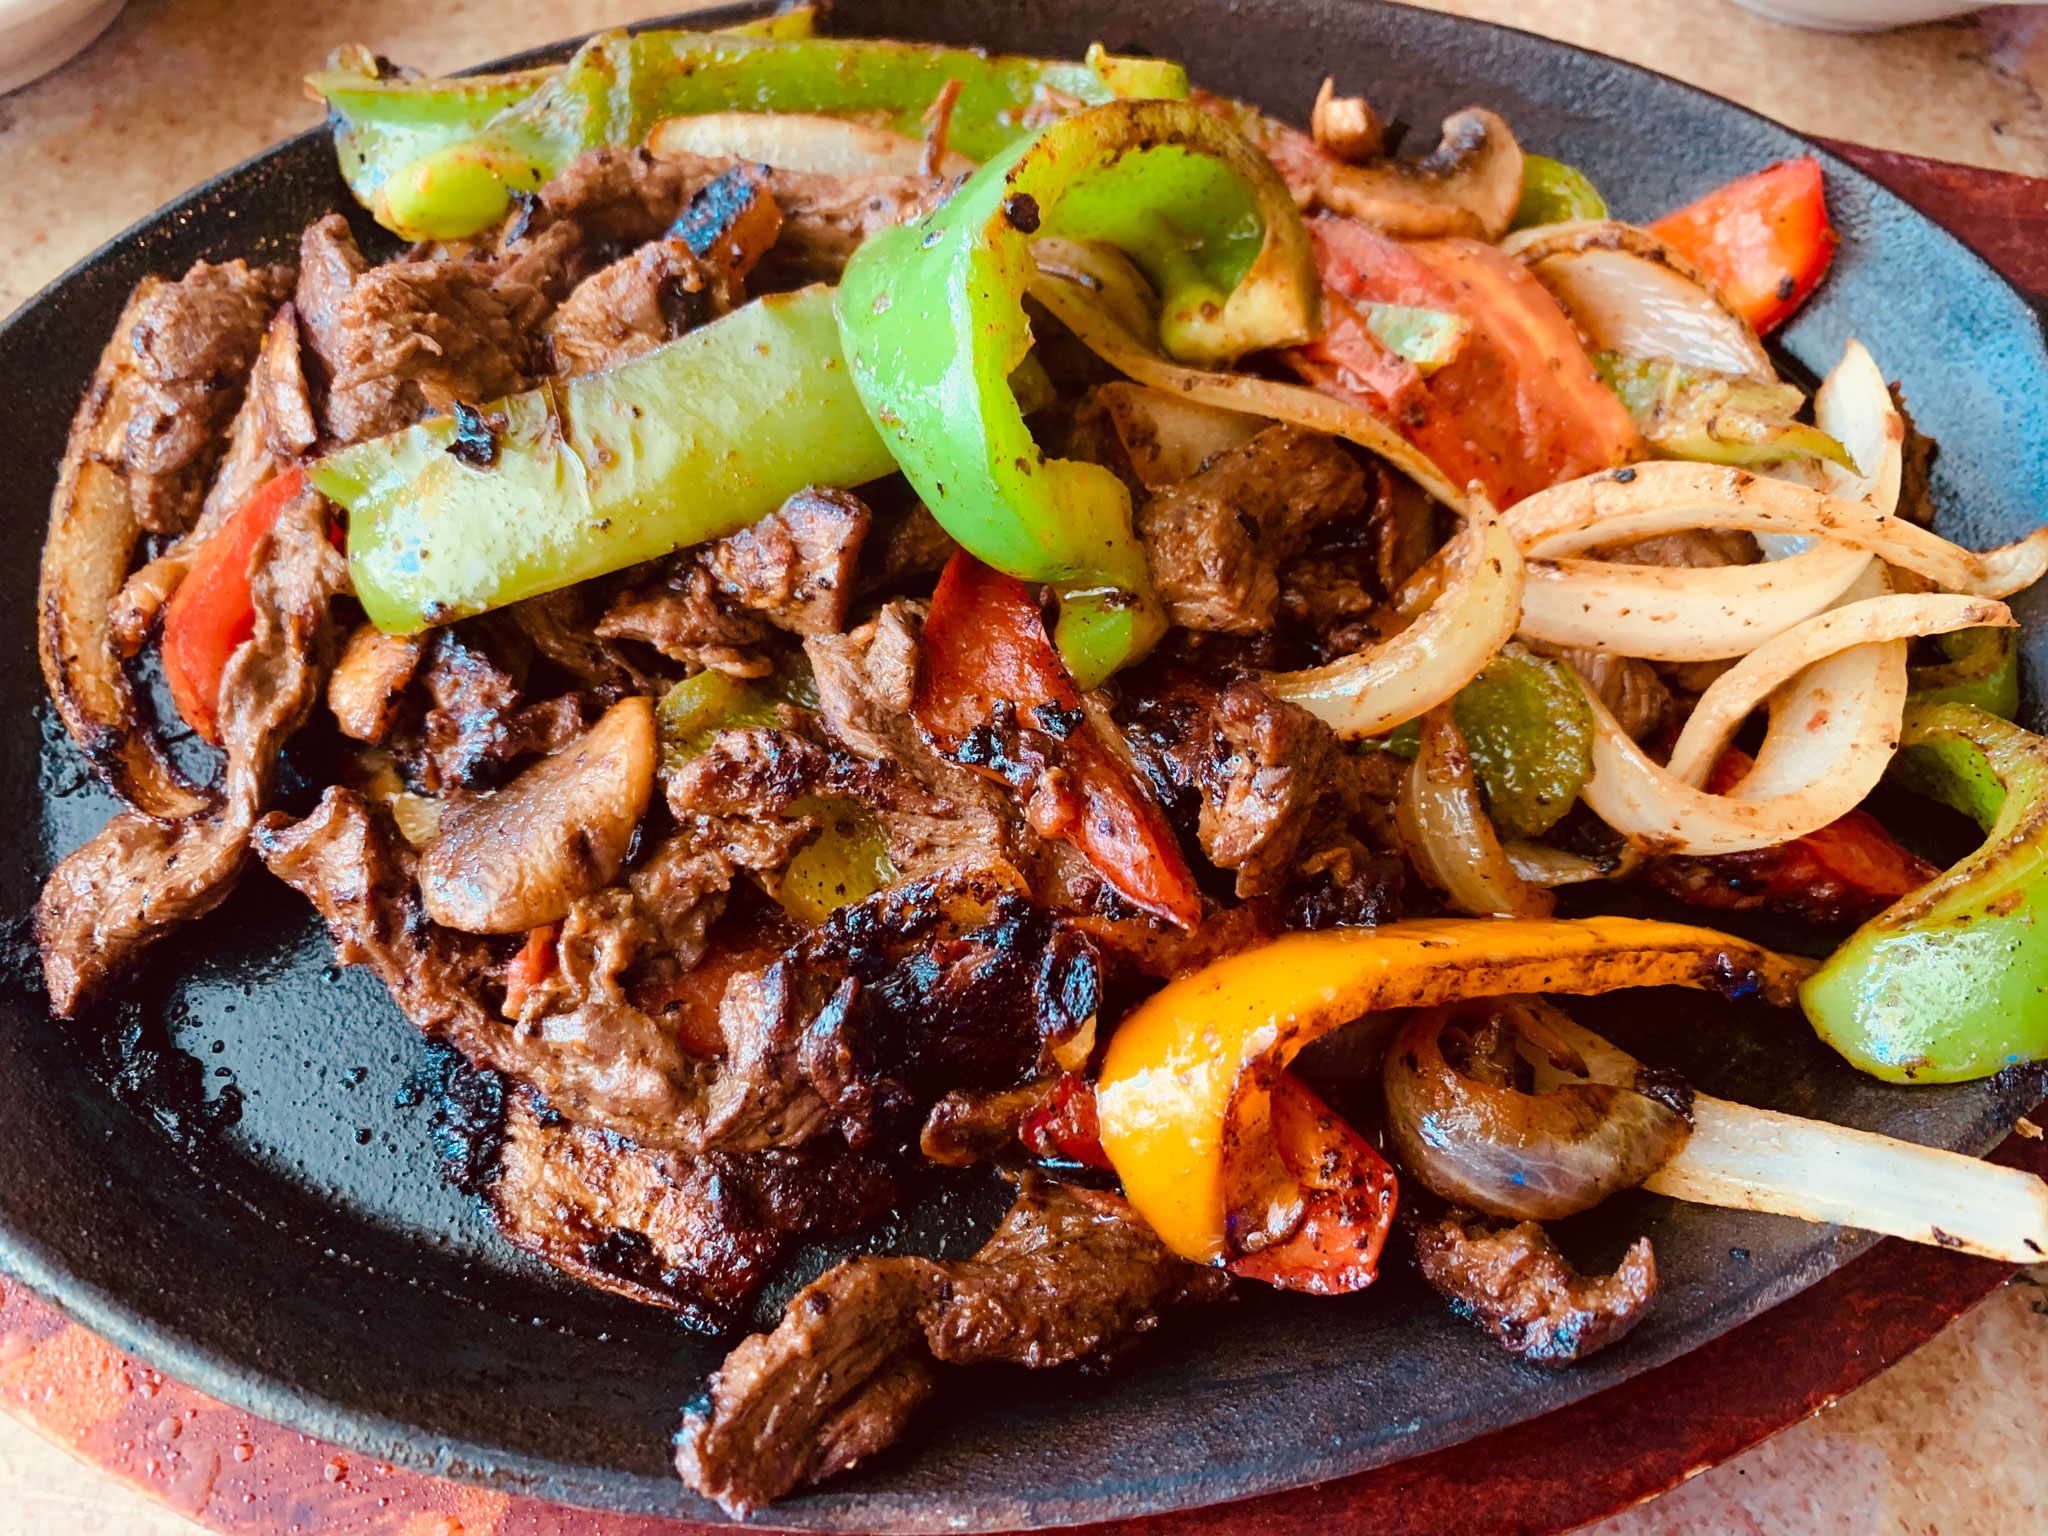 Steak Fajitas at Que Pasa